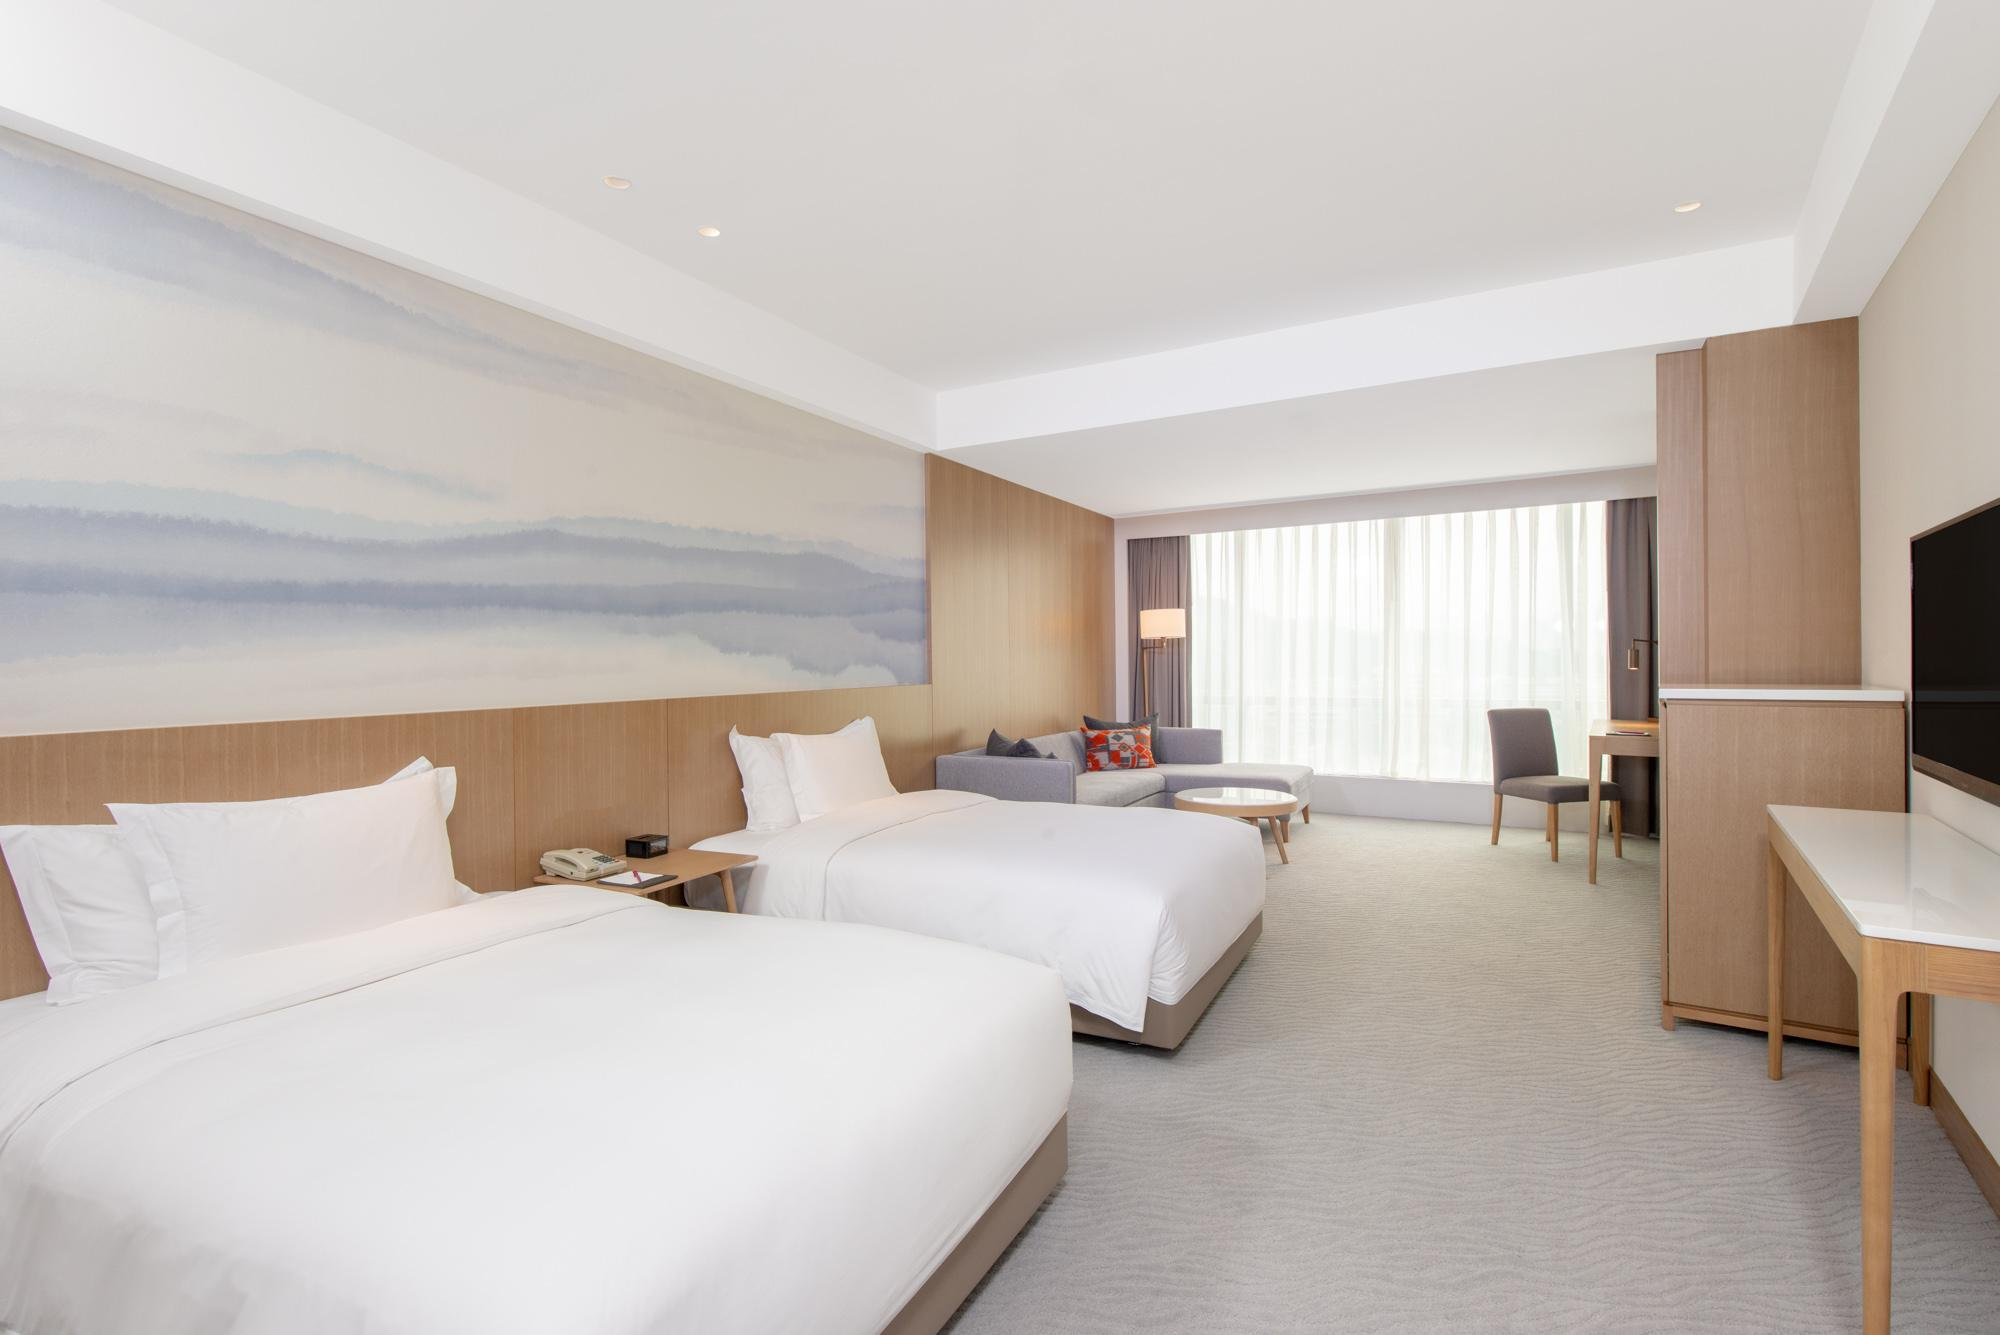 Kamar Crowne Plaza Superior (Crowne Plaza Superior Room)